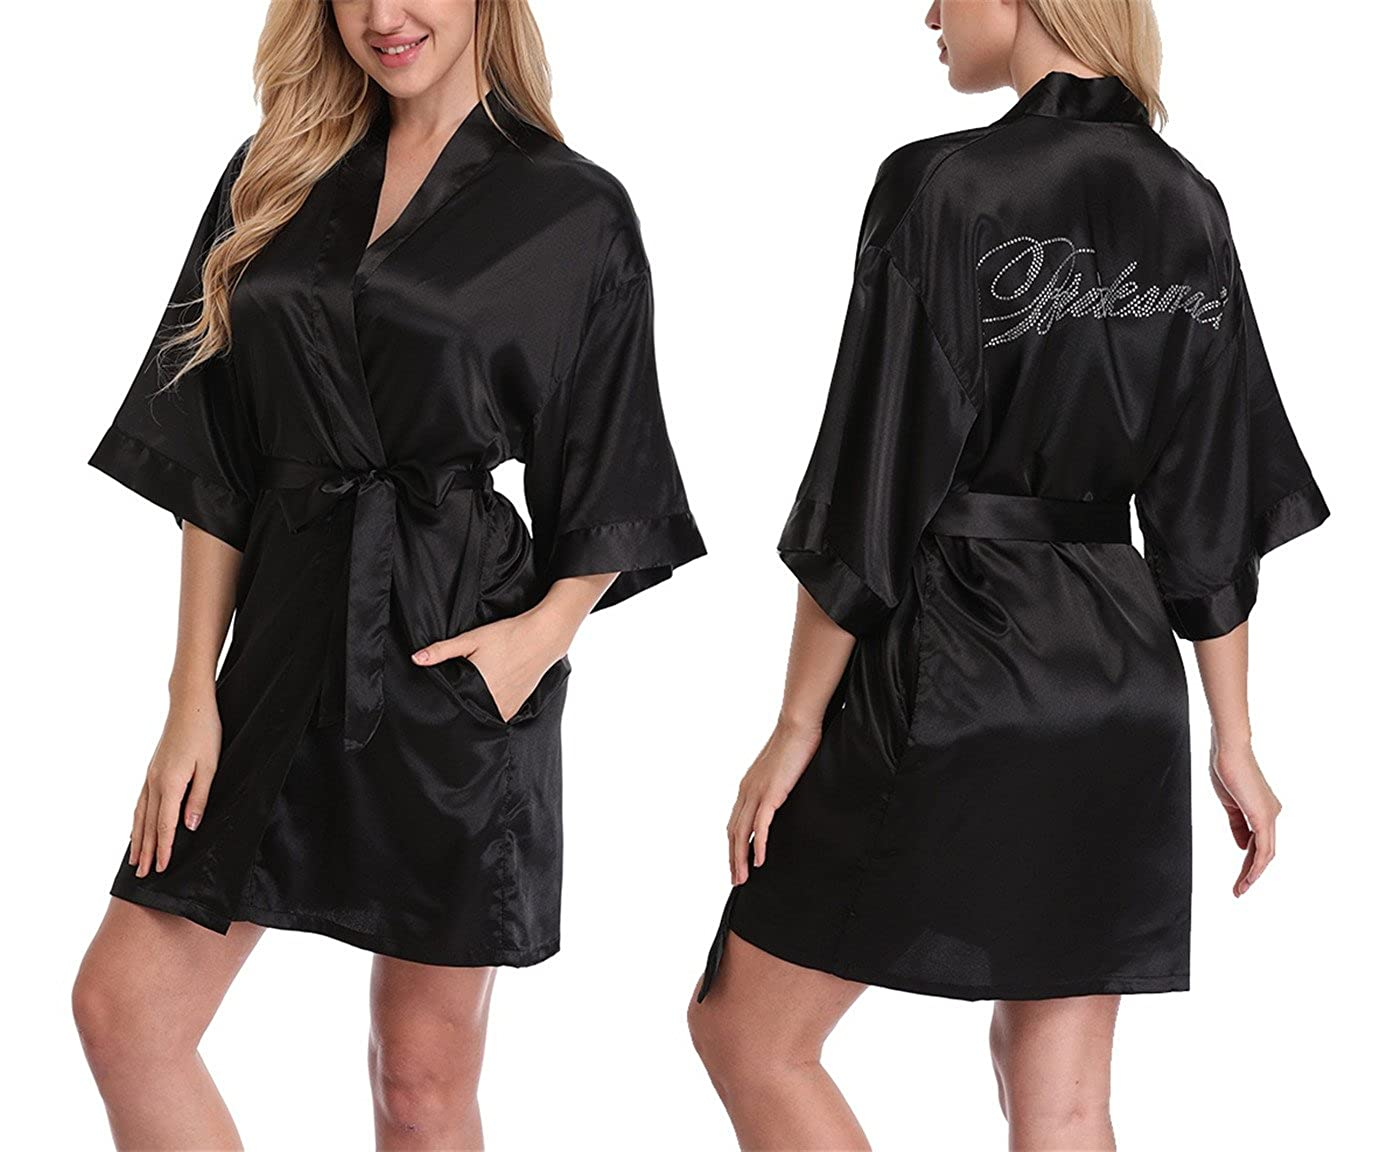 164d30f2b8 Top1  FADSHOW Bridal Robes Wedding Dressing Gowns with Rhinestones for Bride  and Bridesmaids